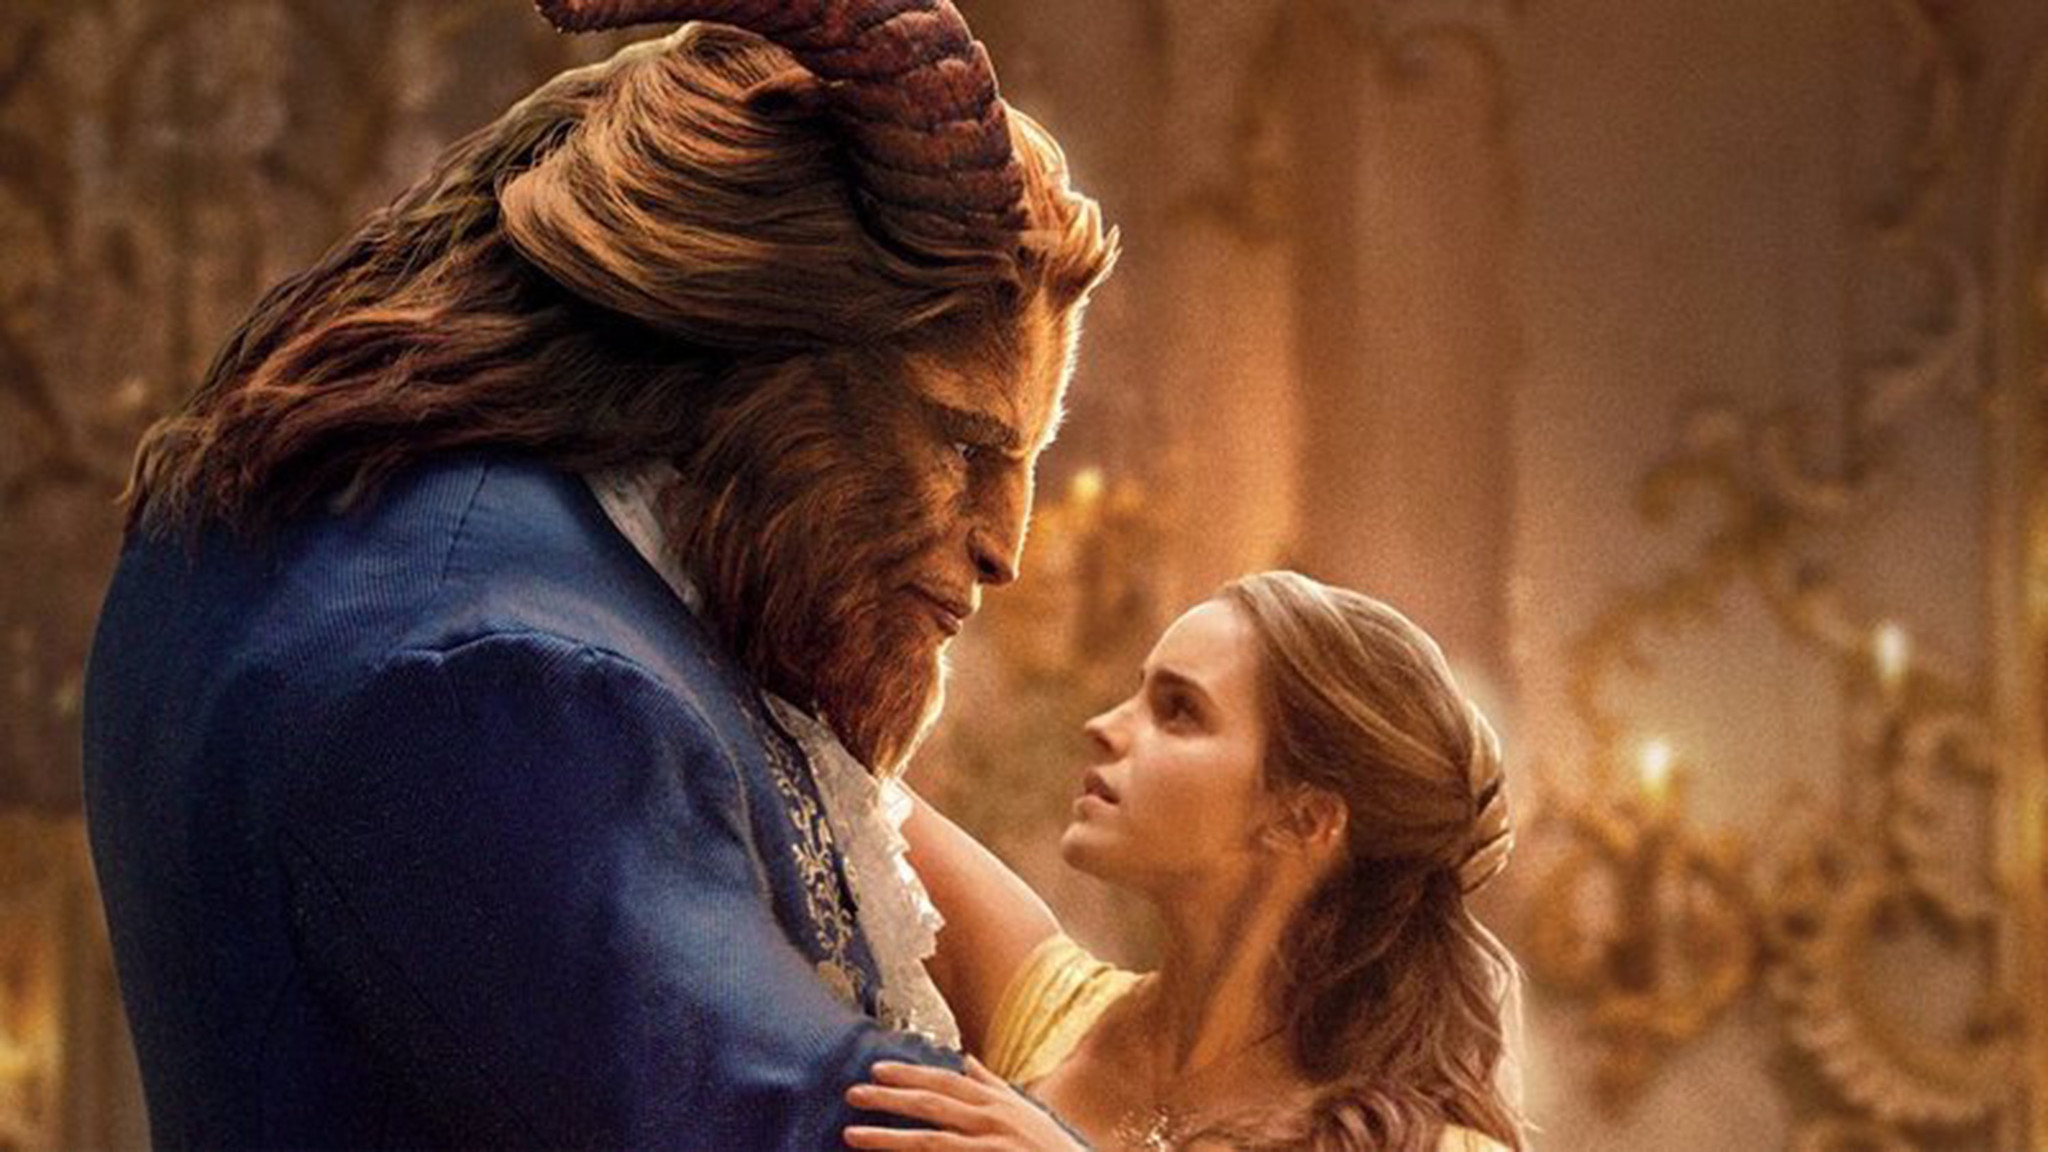 'Beauty and the Beast' tops Friday box office